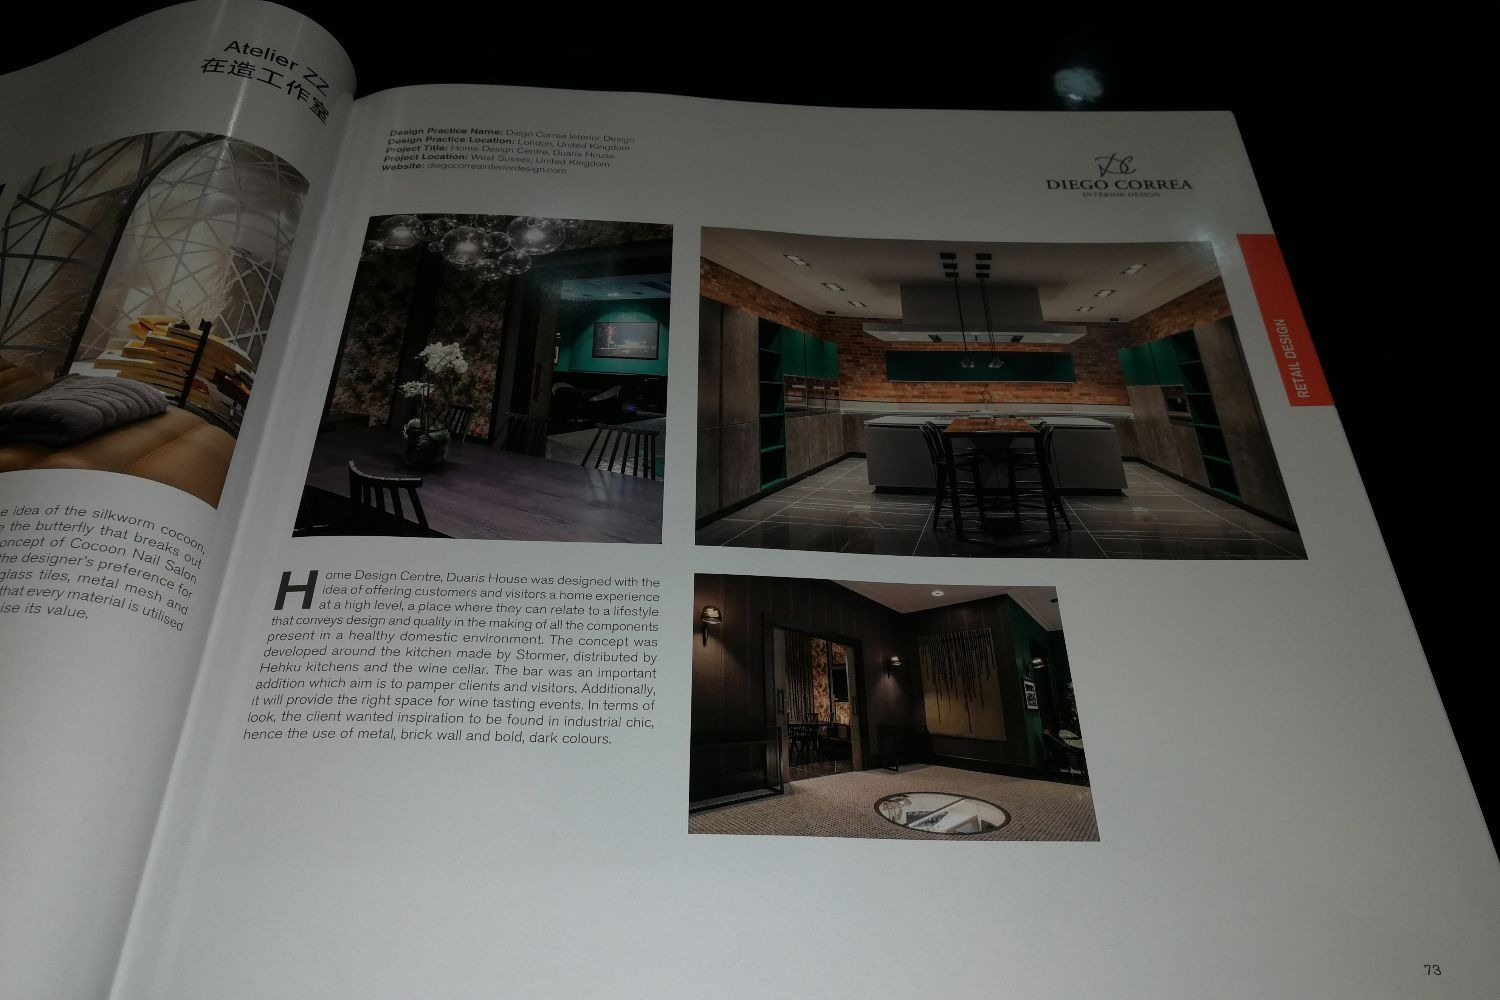 A page from the SBID International Design Awards book, showing Diego's work